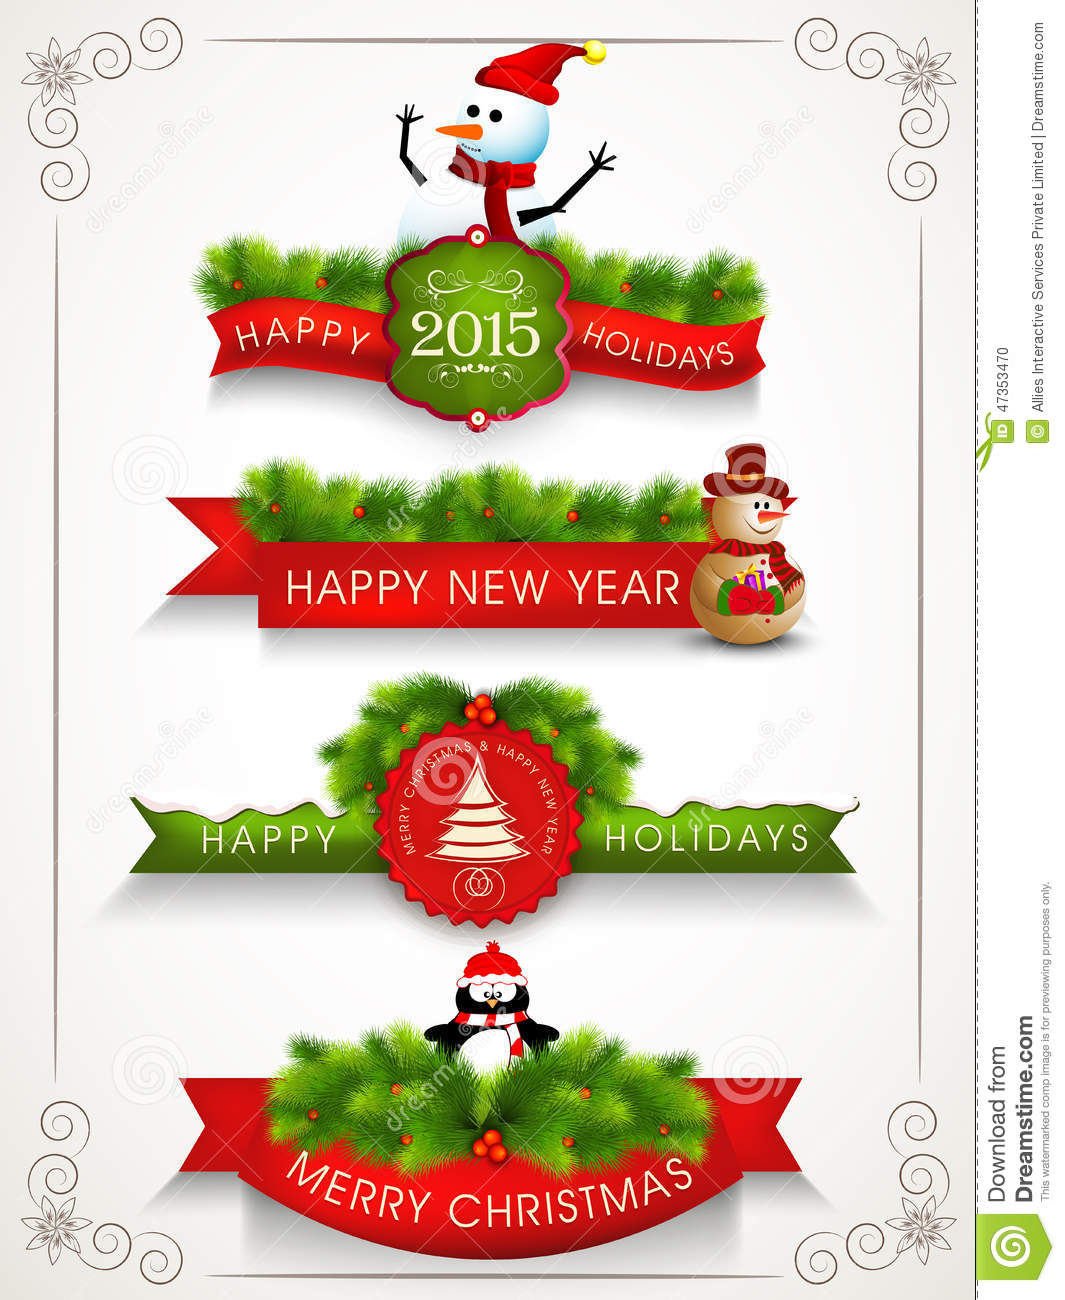 Holidays Celebrations: Merry Christmas, Happy New Year And Happy Holidays